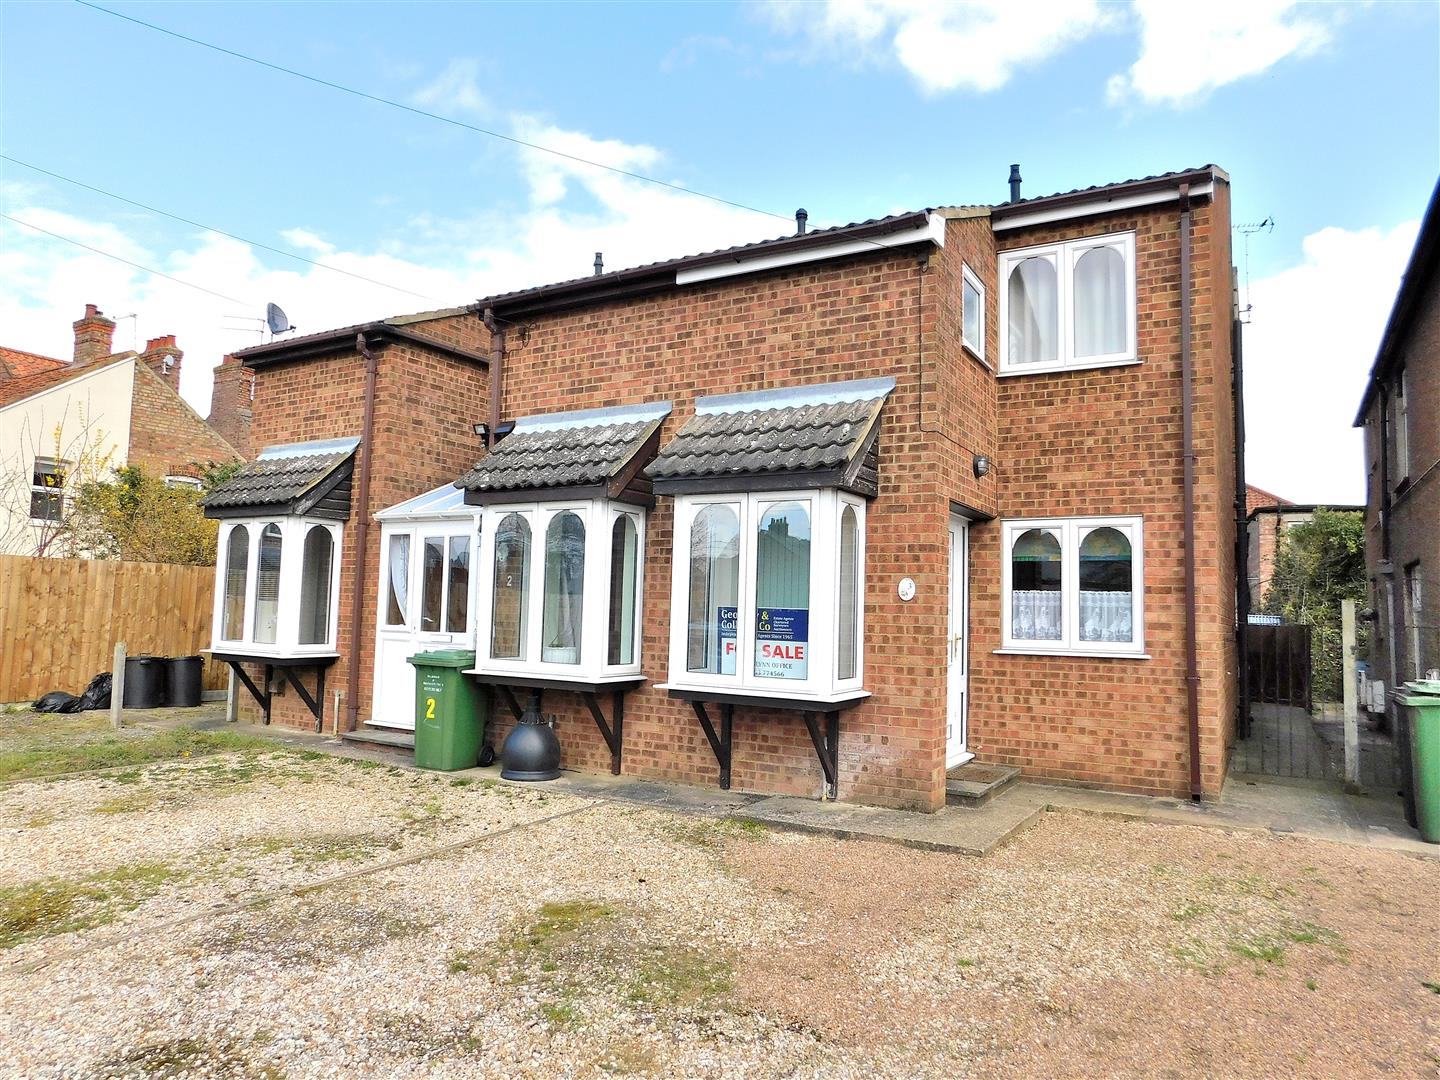 3 bed end of terrace house for sale in King's Lynn, PE30 2BT, PE30